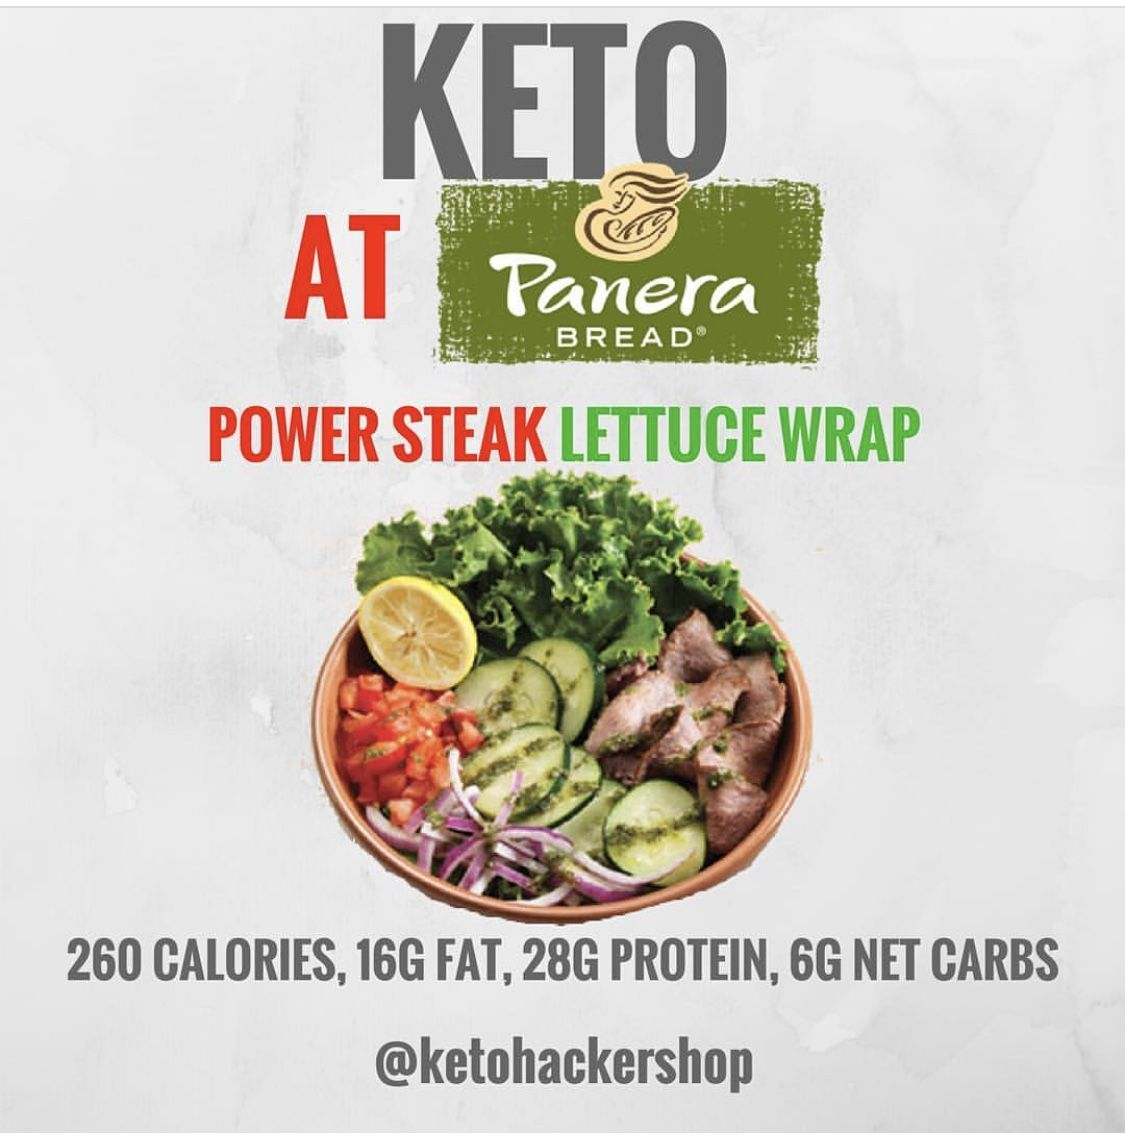 whats keto agreeable on panera